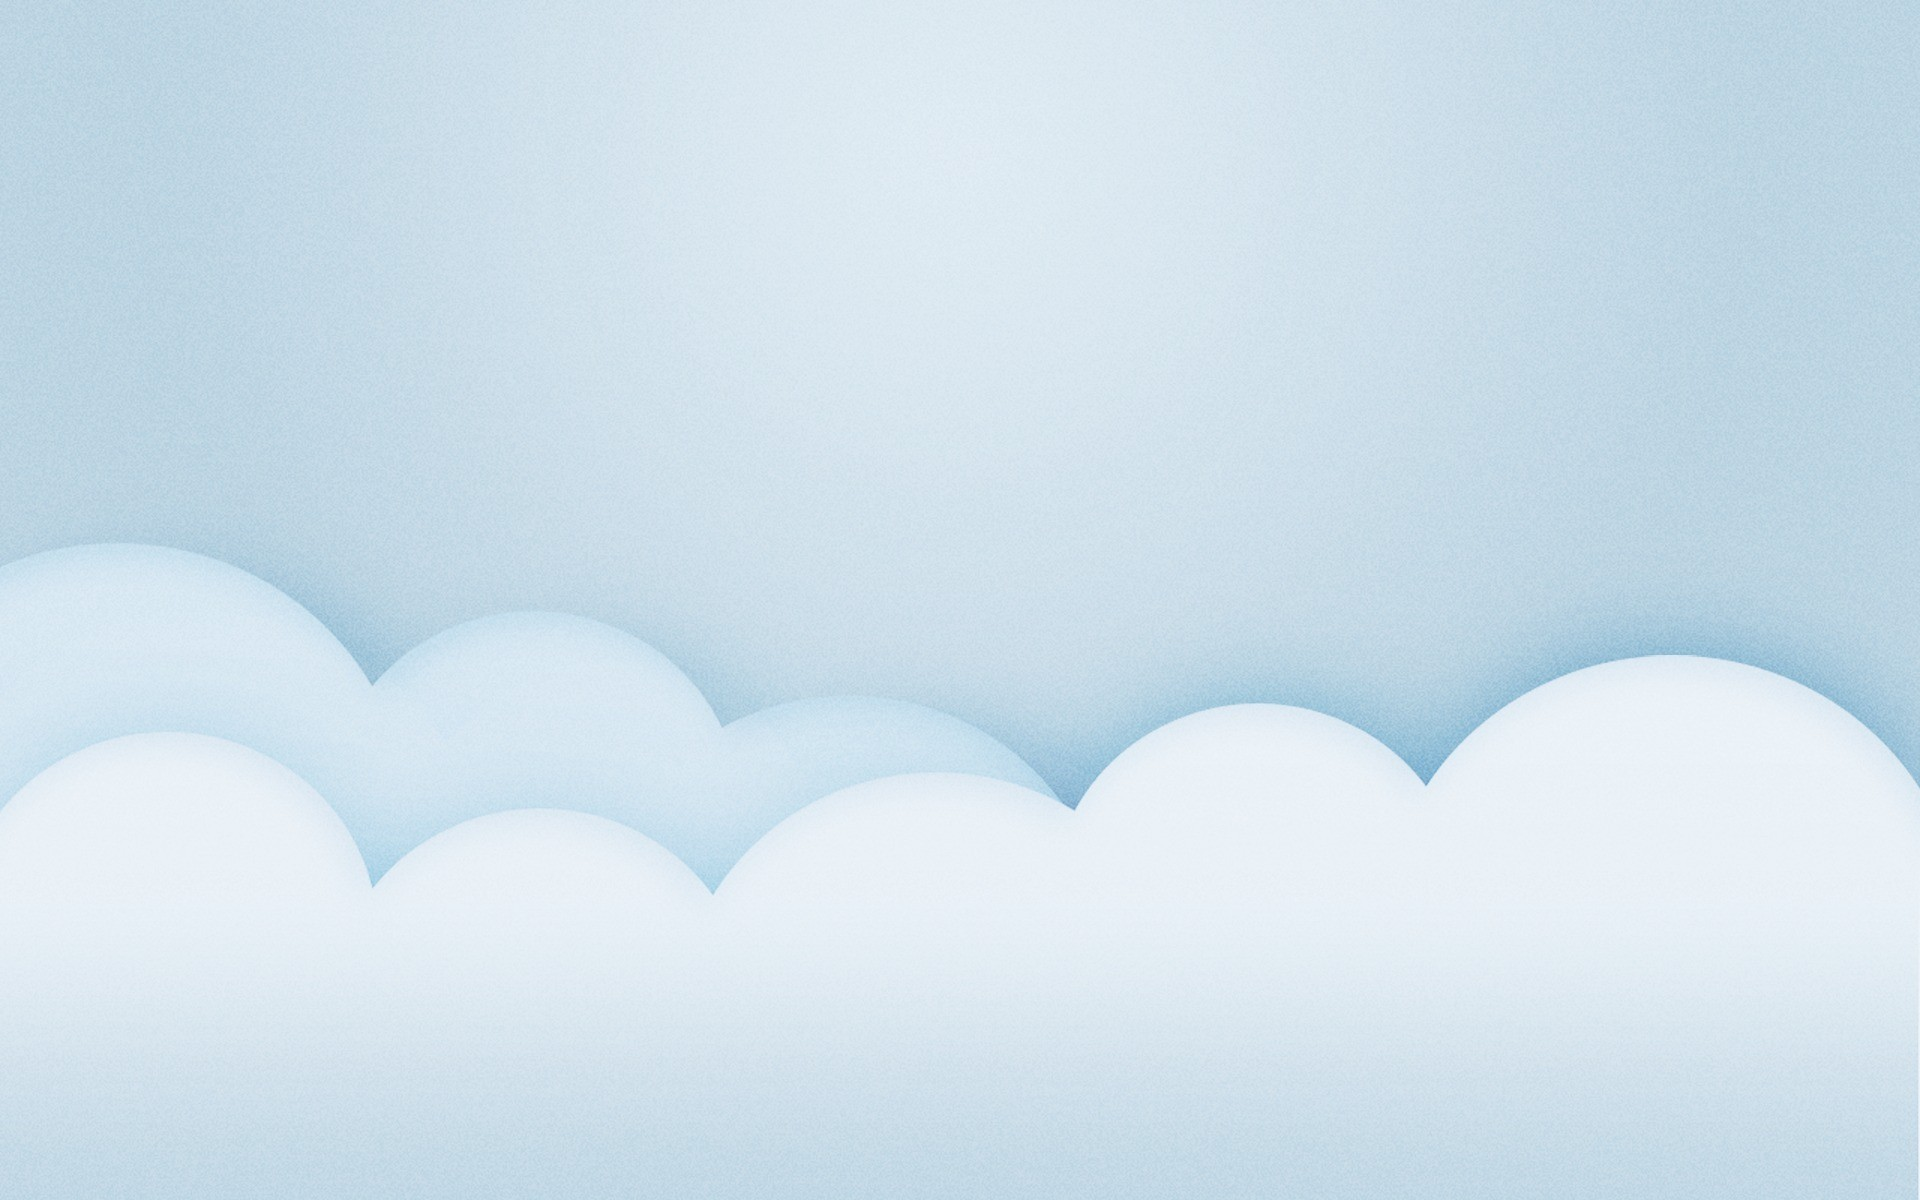 clouds hd wallpaper minimalist - photo #4